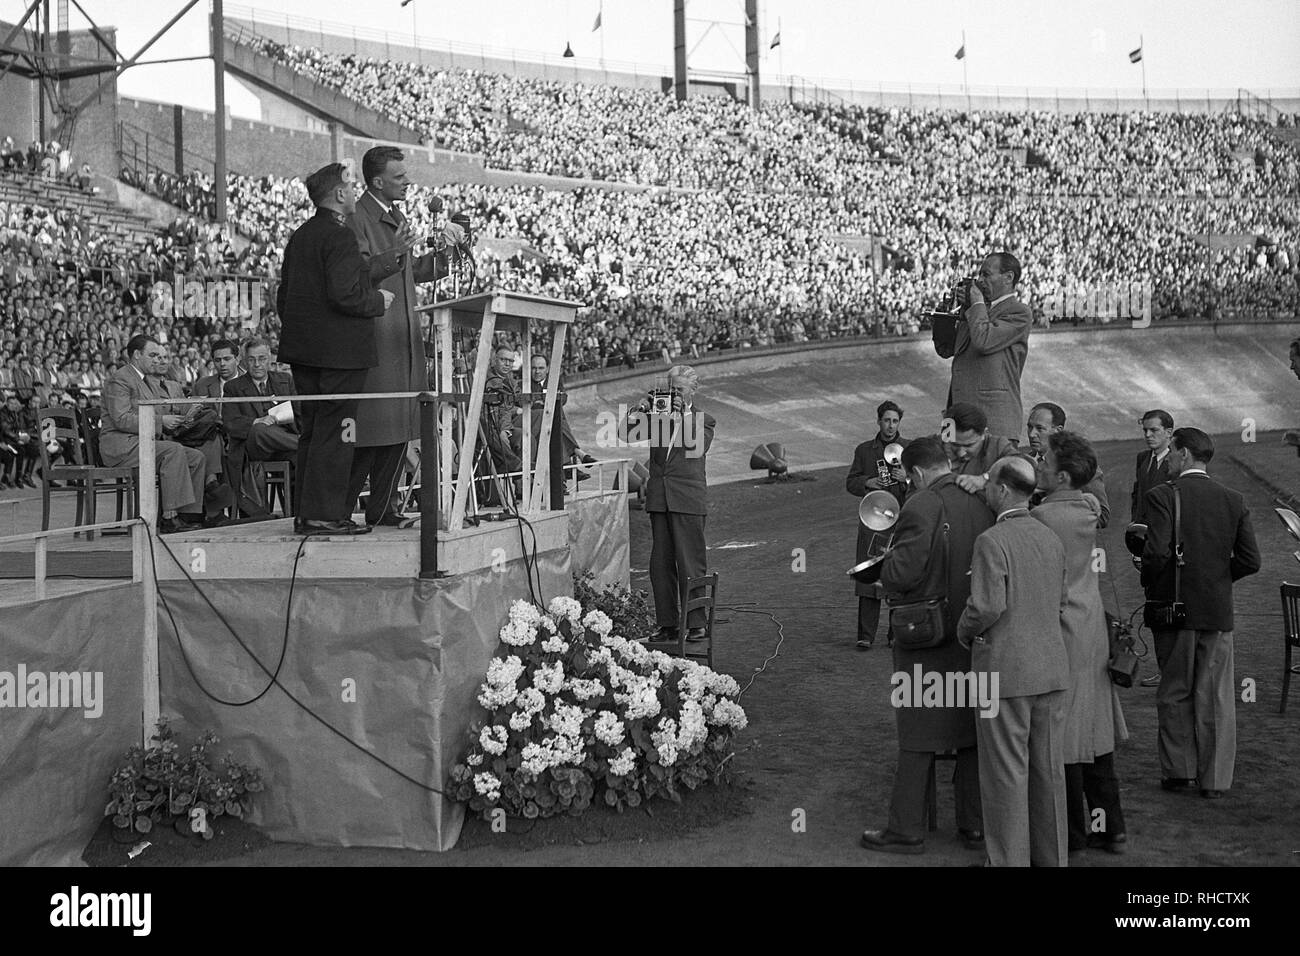 Billy Graham preaching at Olympic Stadium in Amsterdam, North Holland on June 22, 1954. - Stock Image